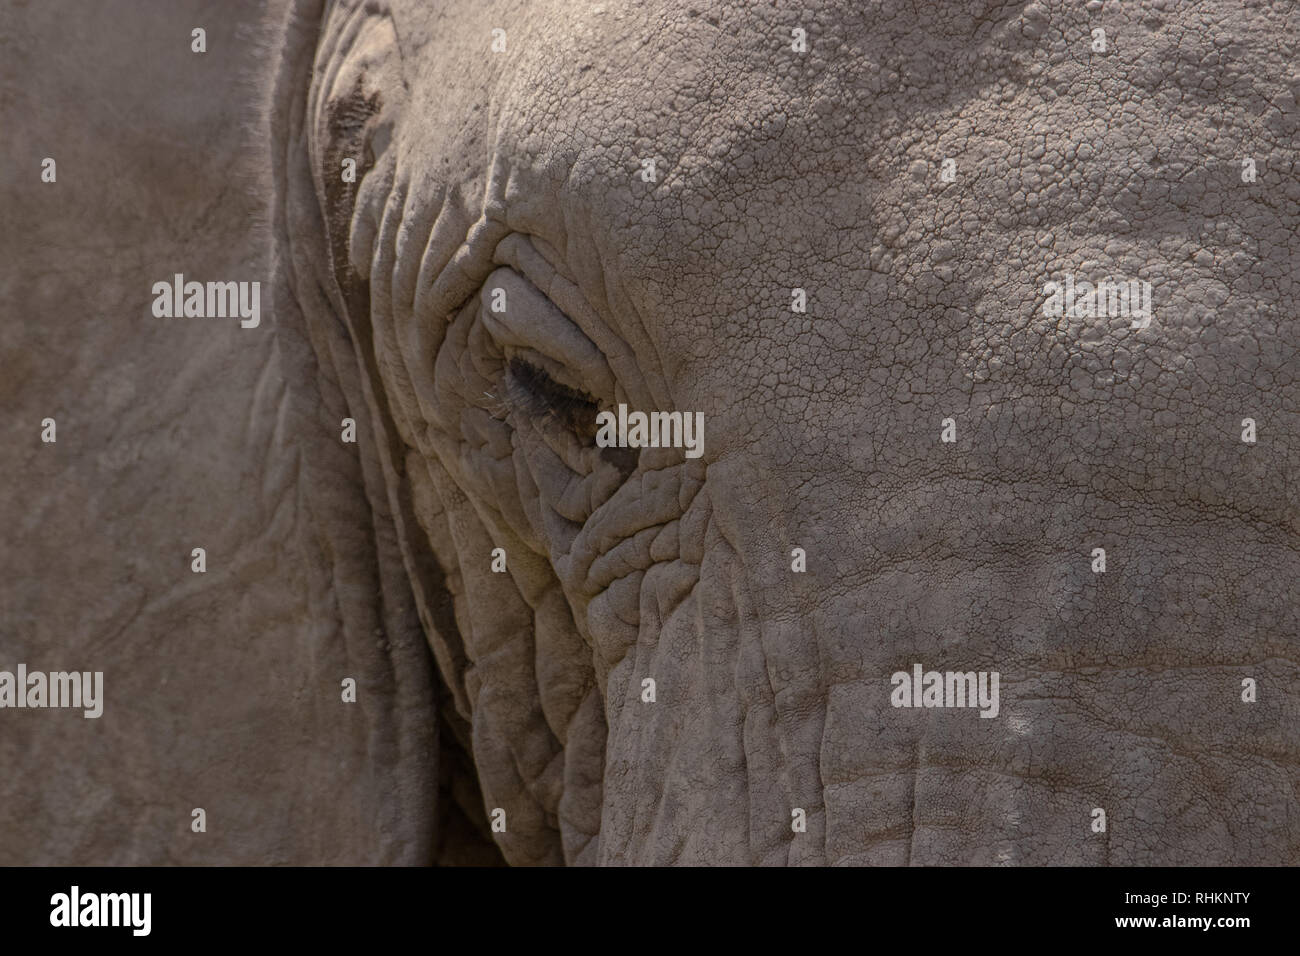 Close-up of an elephant's head - Stock Image